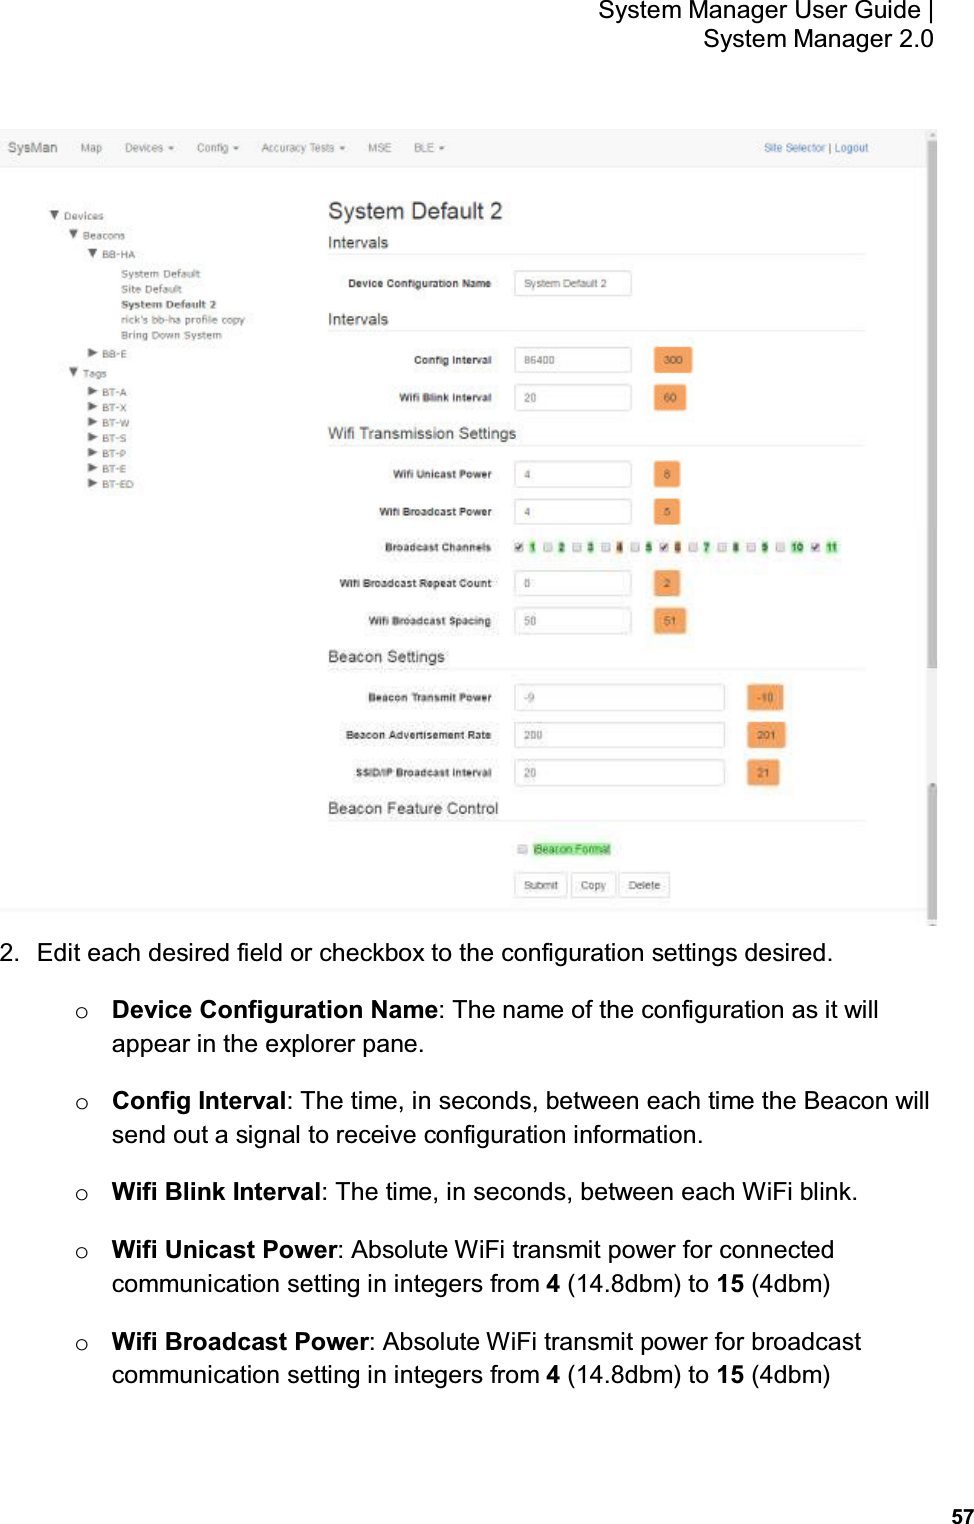 57 System Manager User Guide    System Manager 2.0  2.  Edit each desired field or checkbox to the configuration settings desired. o Device Configuration Name: The name of the configuration as it will appear in the explorer pane. o Config Interval: The time, in seconds, between each time the Beacon will send out a signal to receive configuration information. o Wifi Blink Interval: The time, in seconds, between each WiFi blink. o Wifi Unicast Power: Absolute WiFi transmit power for connected communication setting in integers from 4 (14.8dbm) to 15 (4dbm) o Wifi Broadcast Power: Absolute WiFi transmit power for broadcast communication setting in integers from 4 (14.8dbm) to 15 (4dbm)